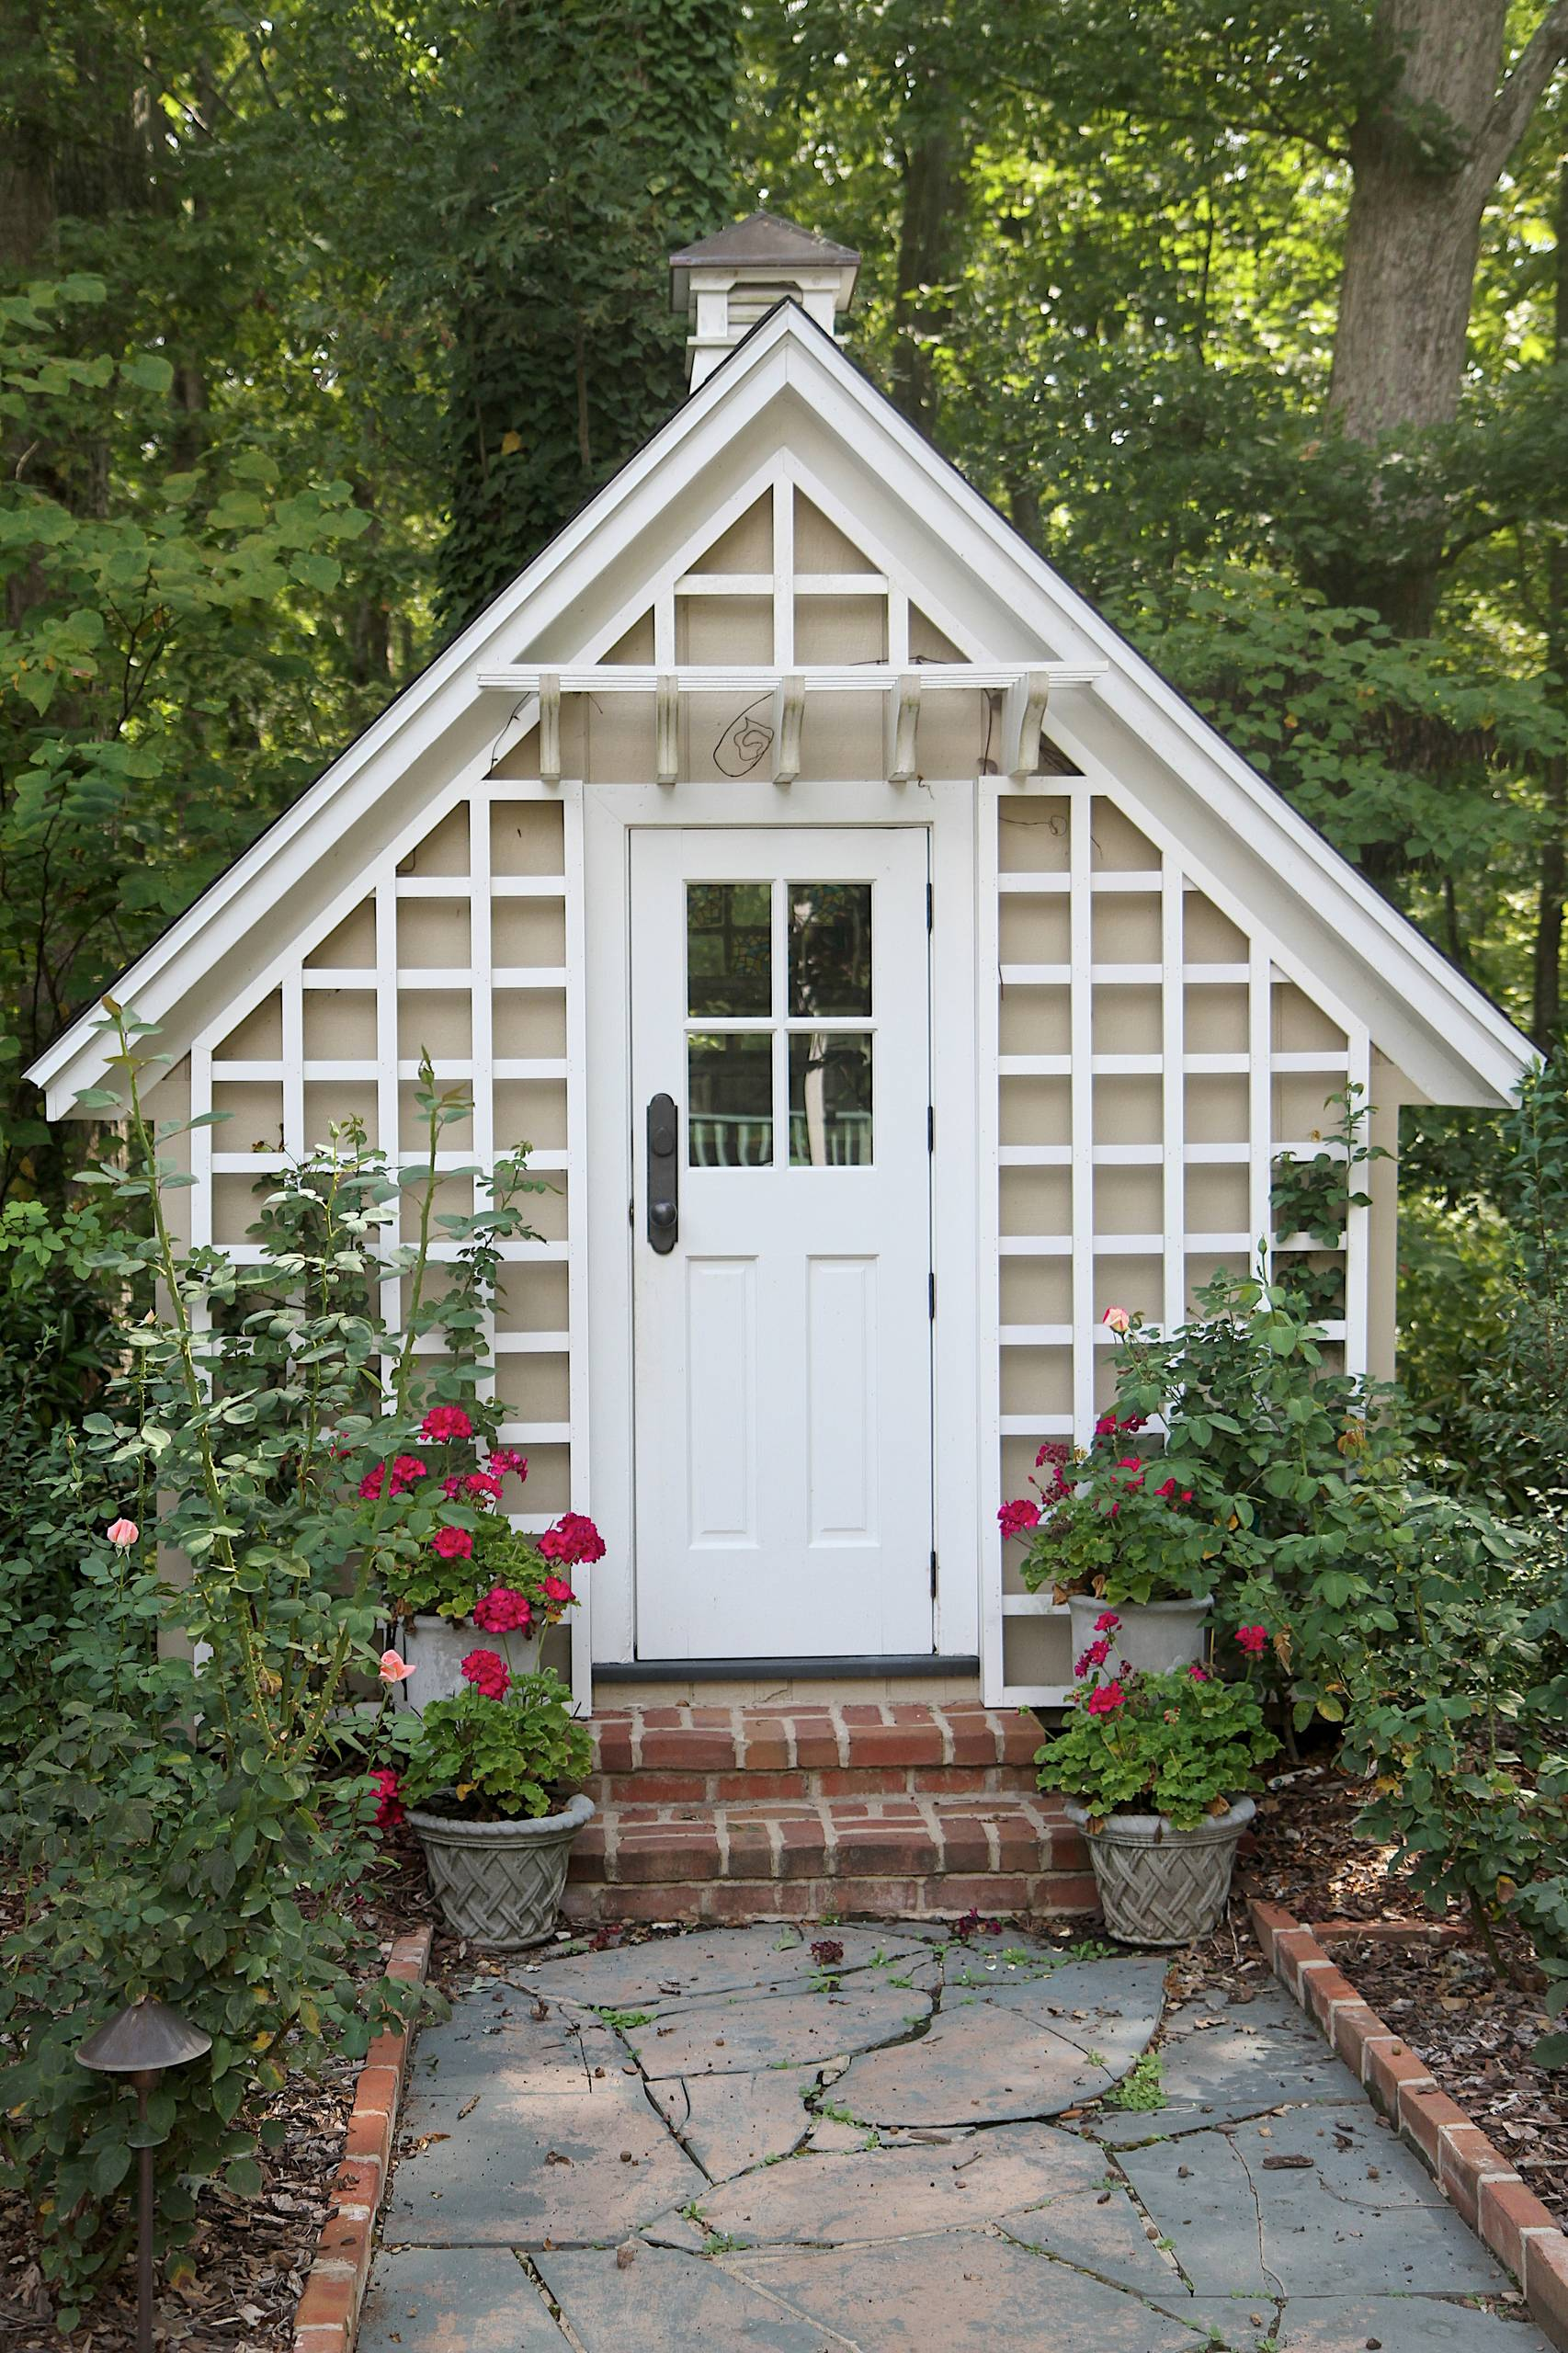 75 Beautiful Victorian Shed Pictures & Ideas - September, 2020 | Houzz